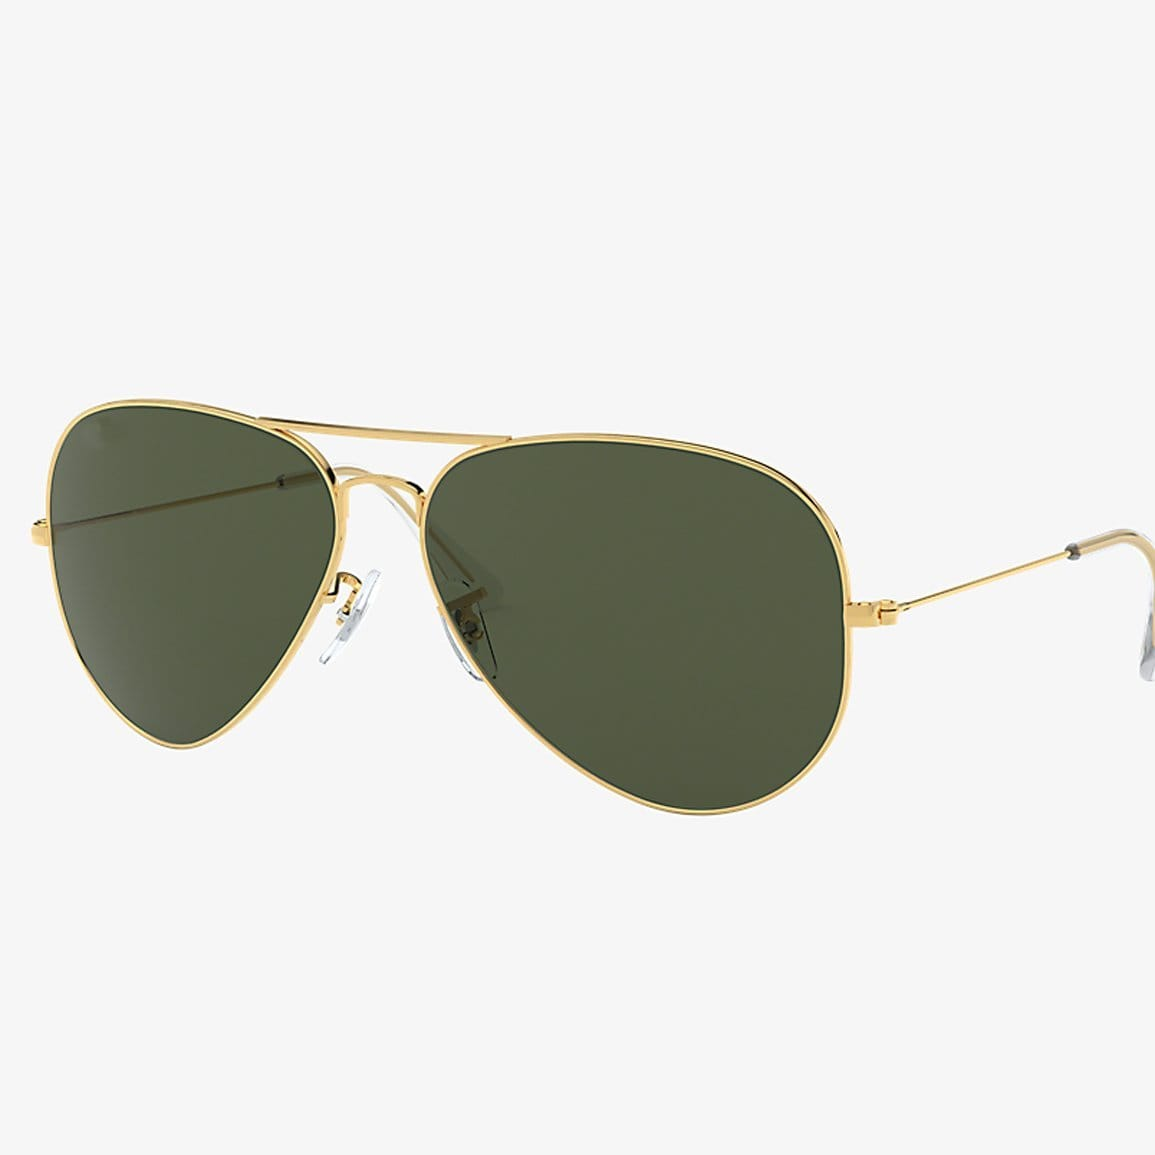 St. Patrick's Day Green Aviator Sunglasses